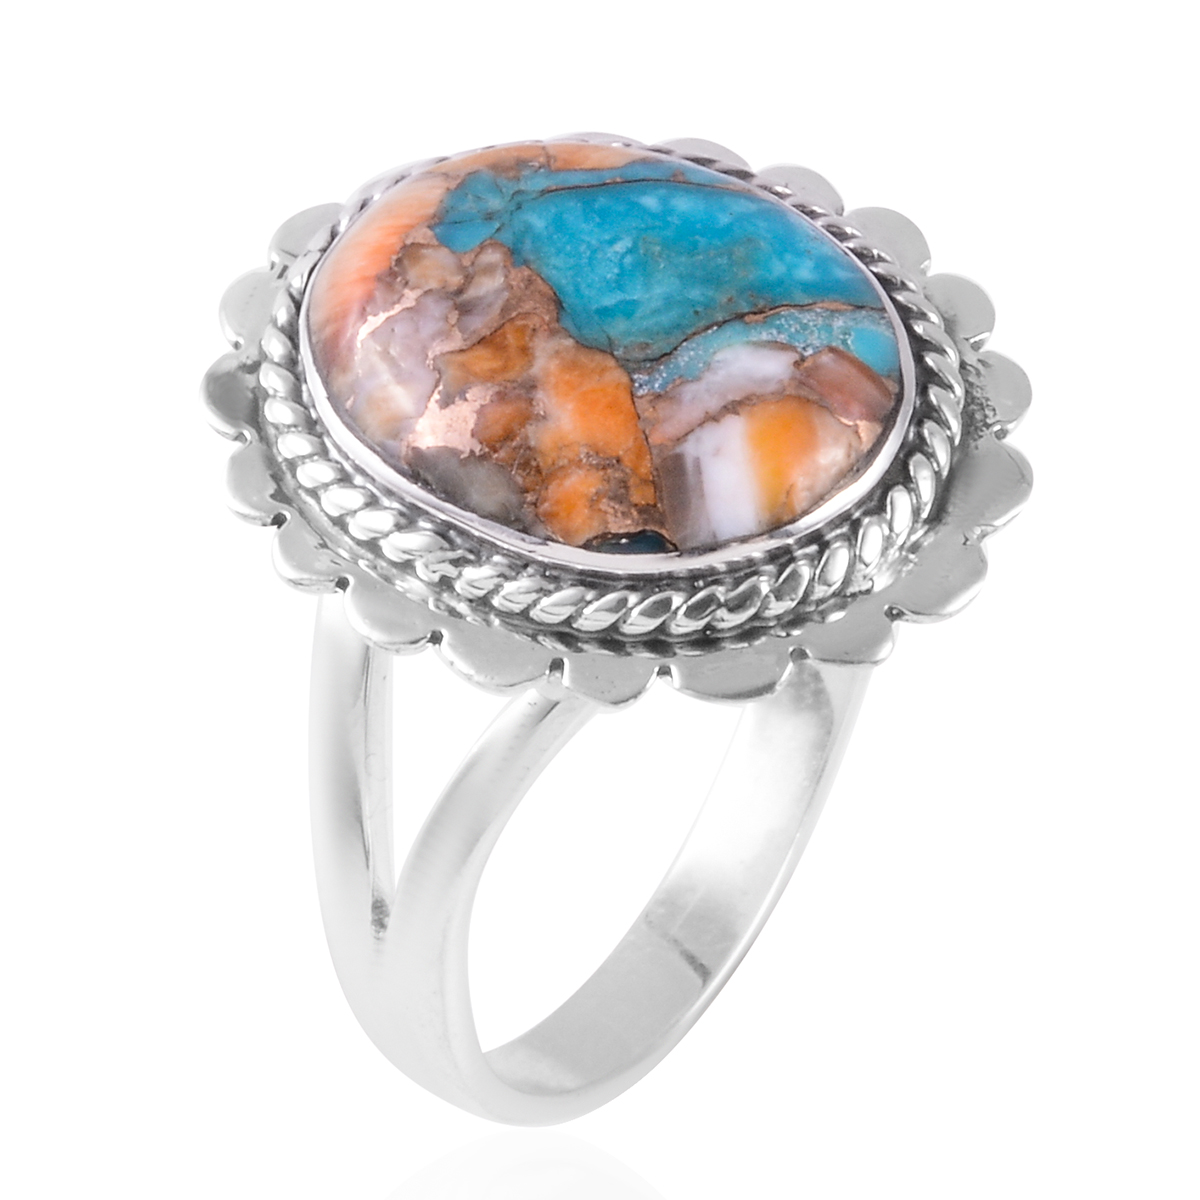 Santa Fe Style Spiny Turquoise Ring in Sterling Silver (Size 9.0) 2.00 ctw